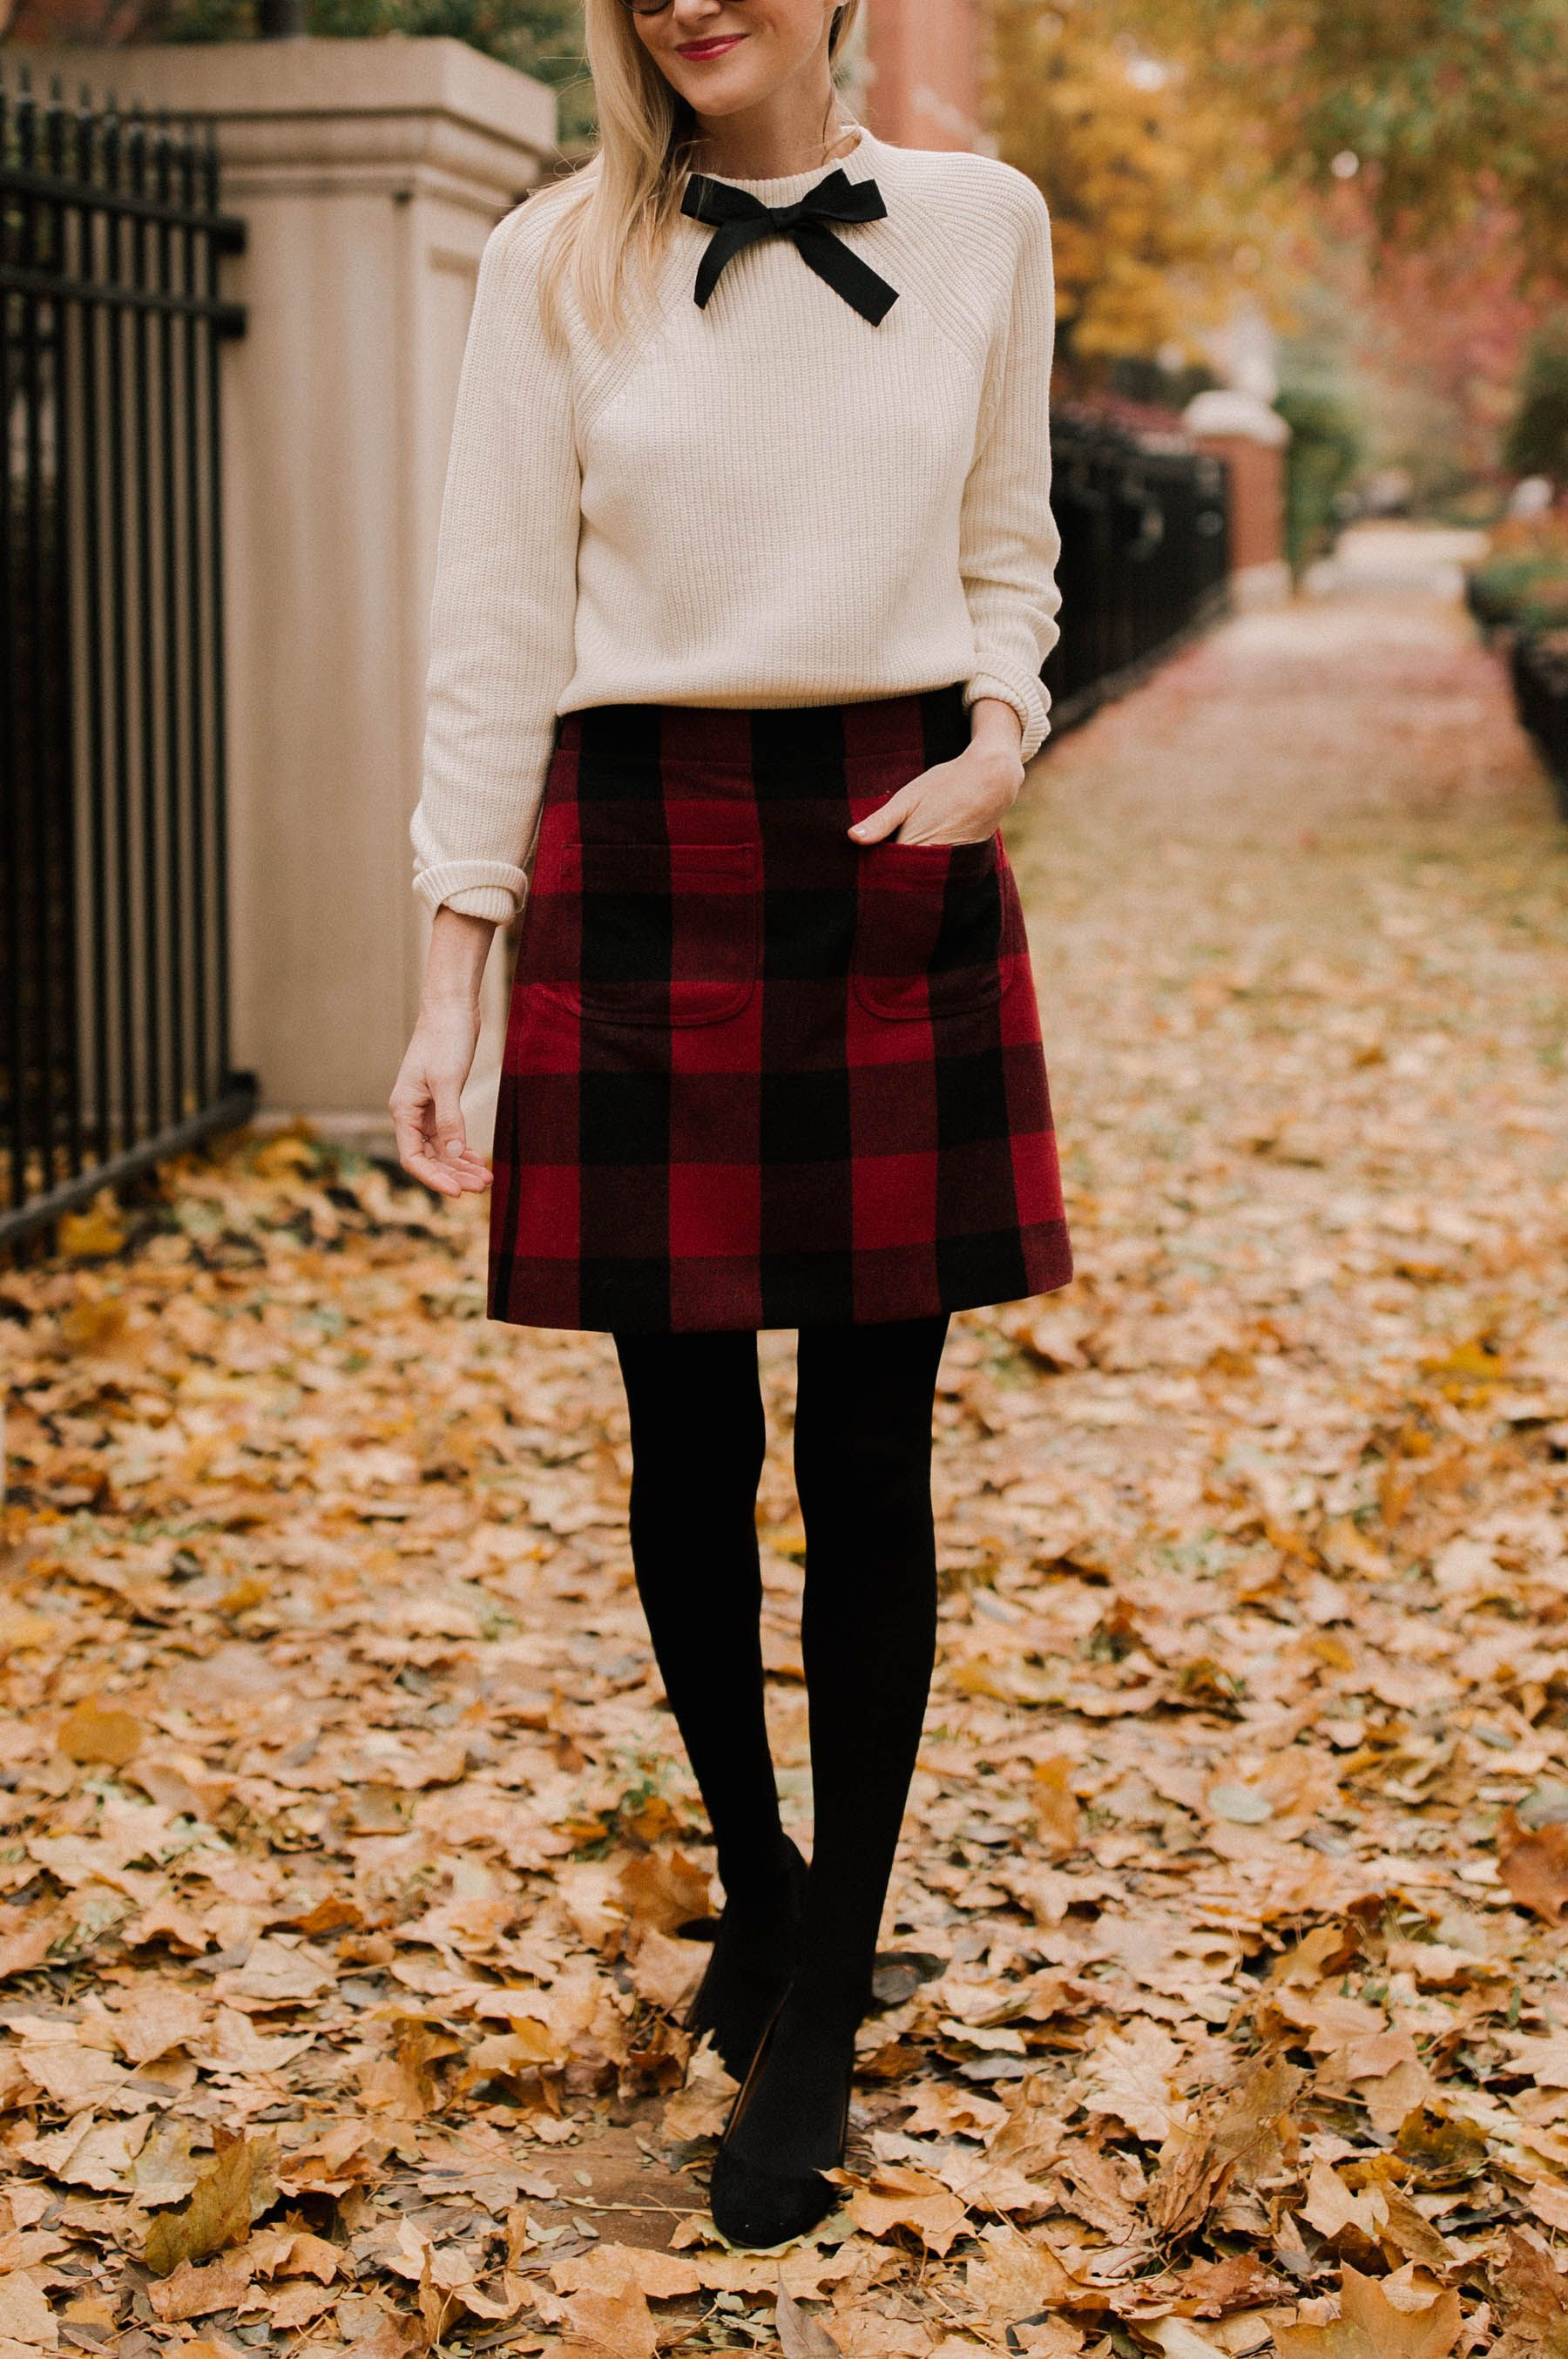 6052942d3f84 Preppy Holiday party outfit. Pair this plaid skirt with a white sweater  with a bow on it! Add tights and booties and you're good to go!